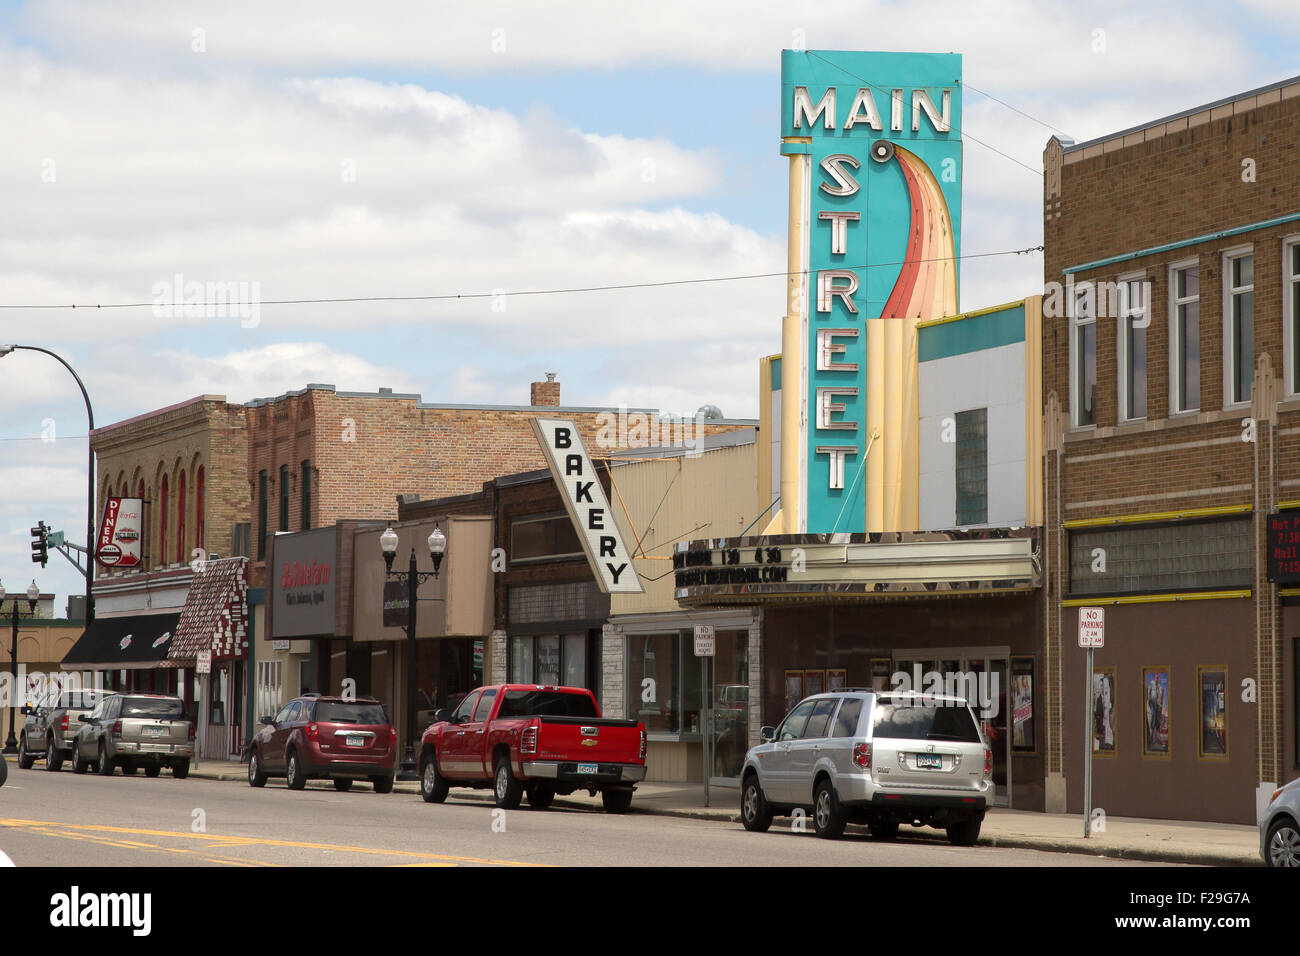 1939 art deco movie theater sign and marquee  along the Main Street of Sauk Centre, Minnesota - Stock Image